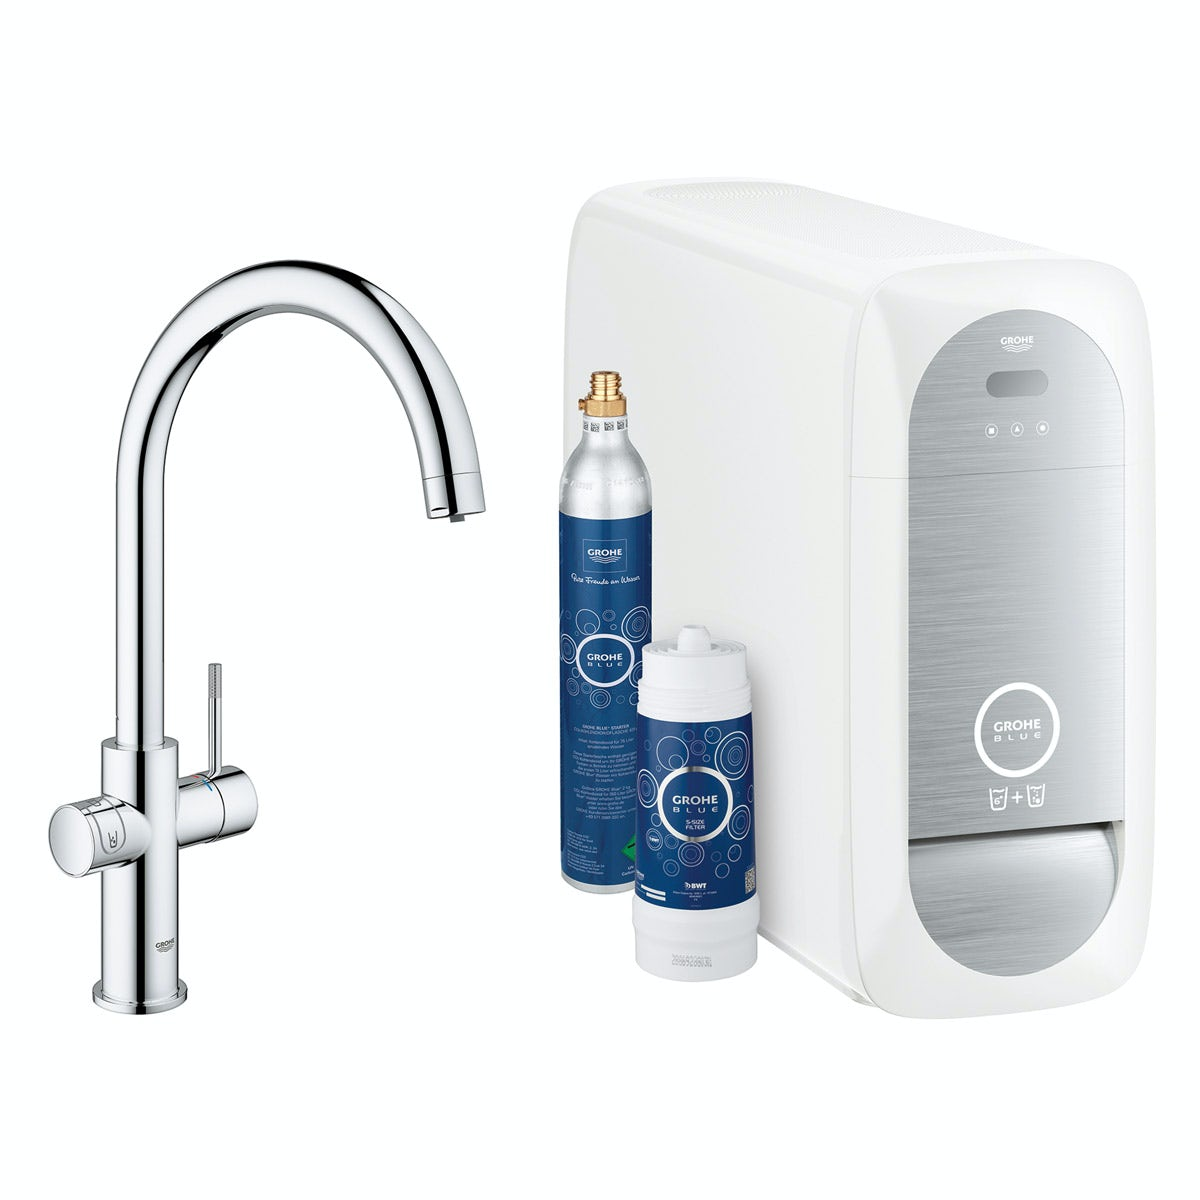 Grohe Blue Home C spout kitchen tap